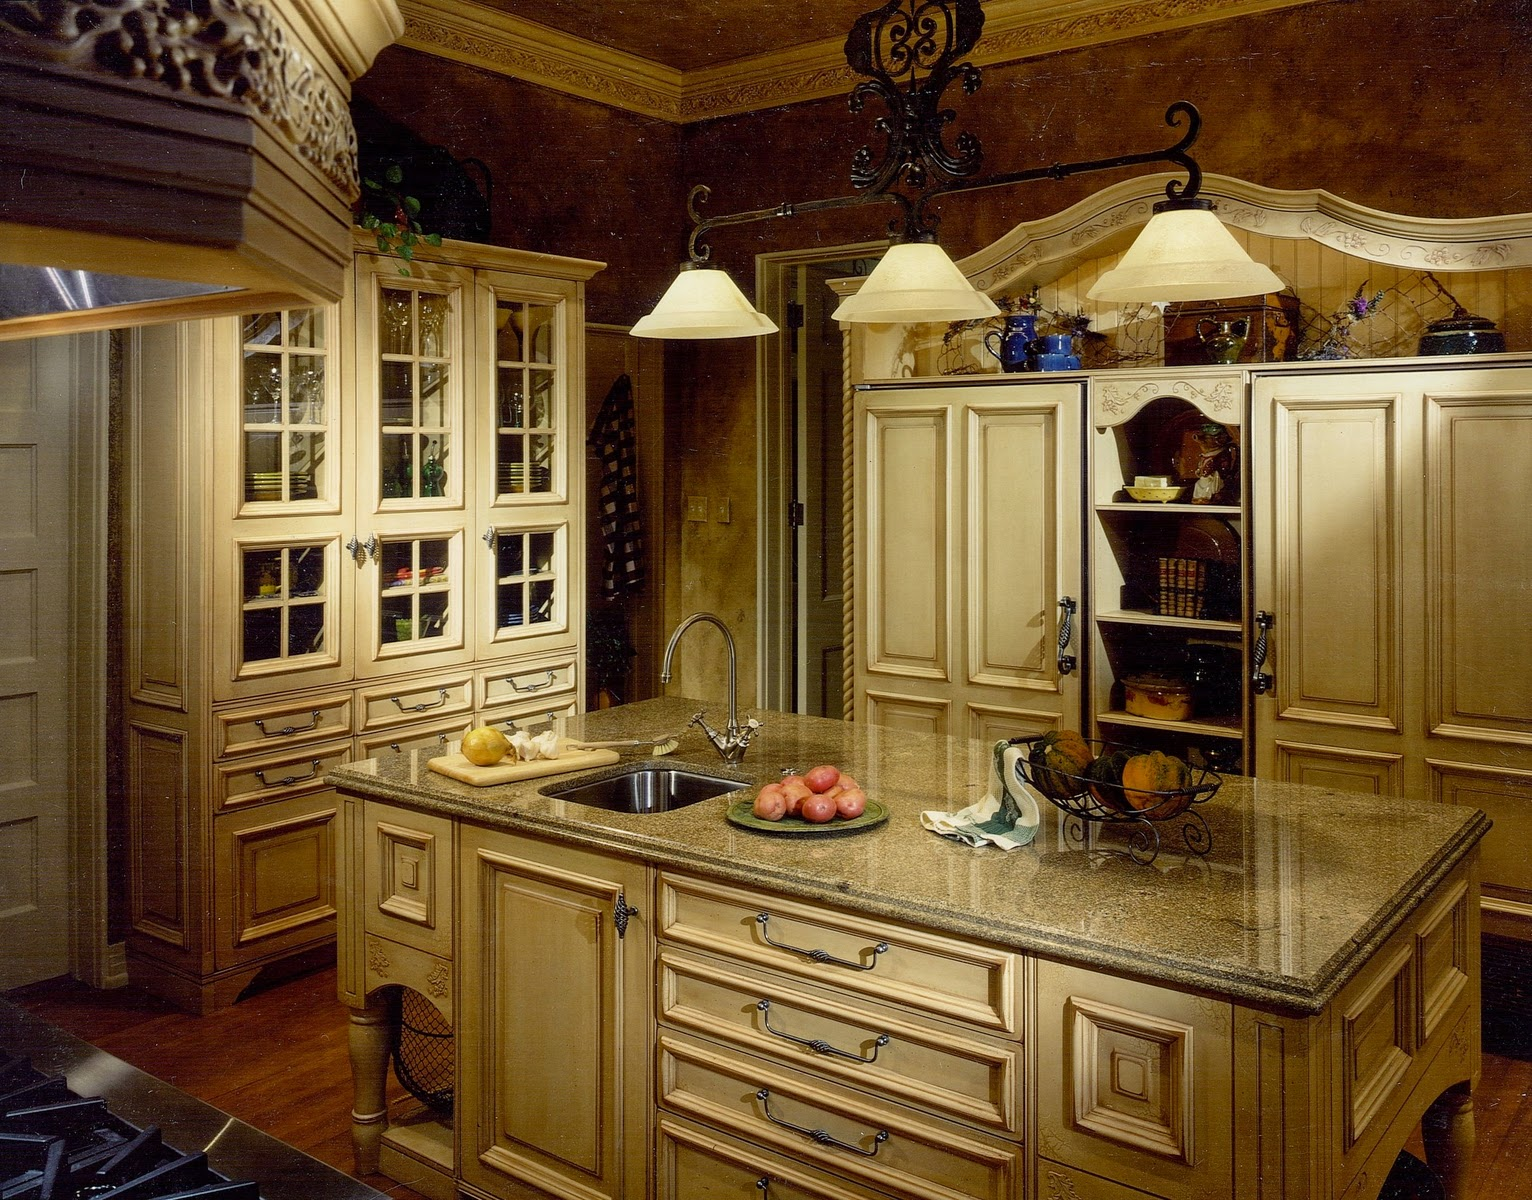 French country kitchen cabinets instant knowledge for Country kitchen cabinets